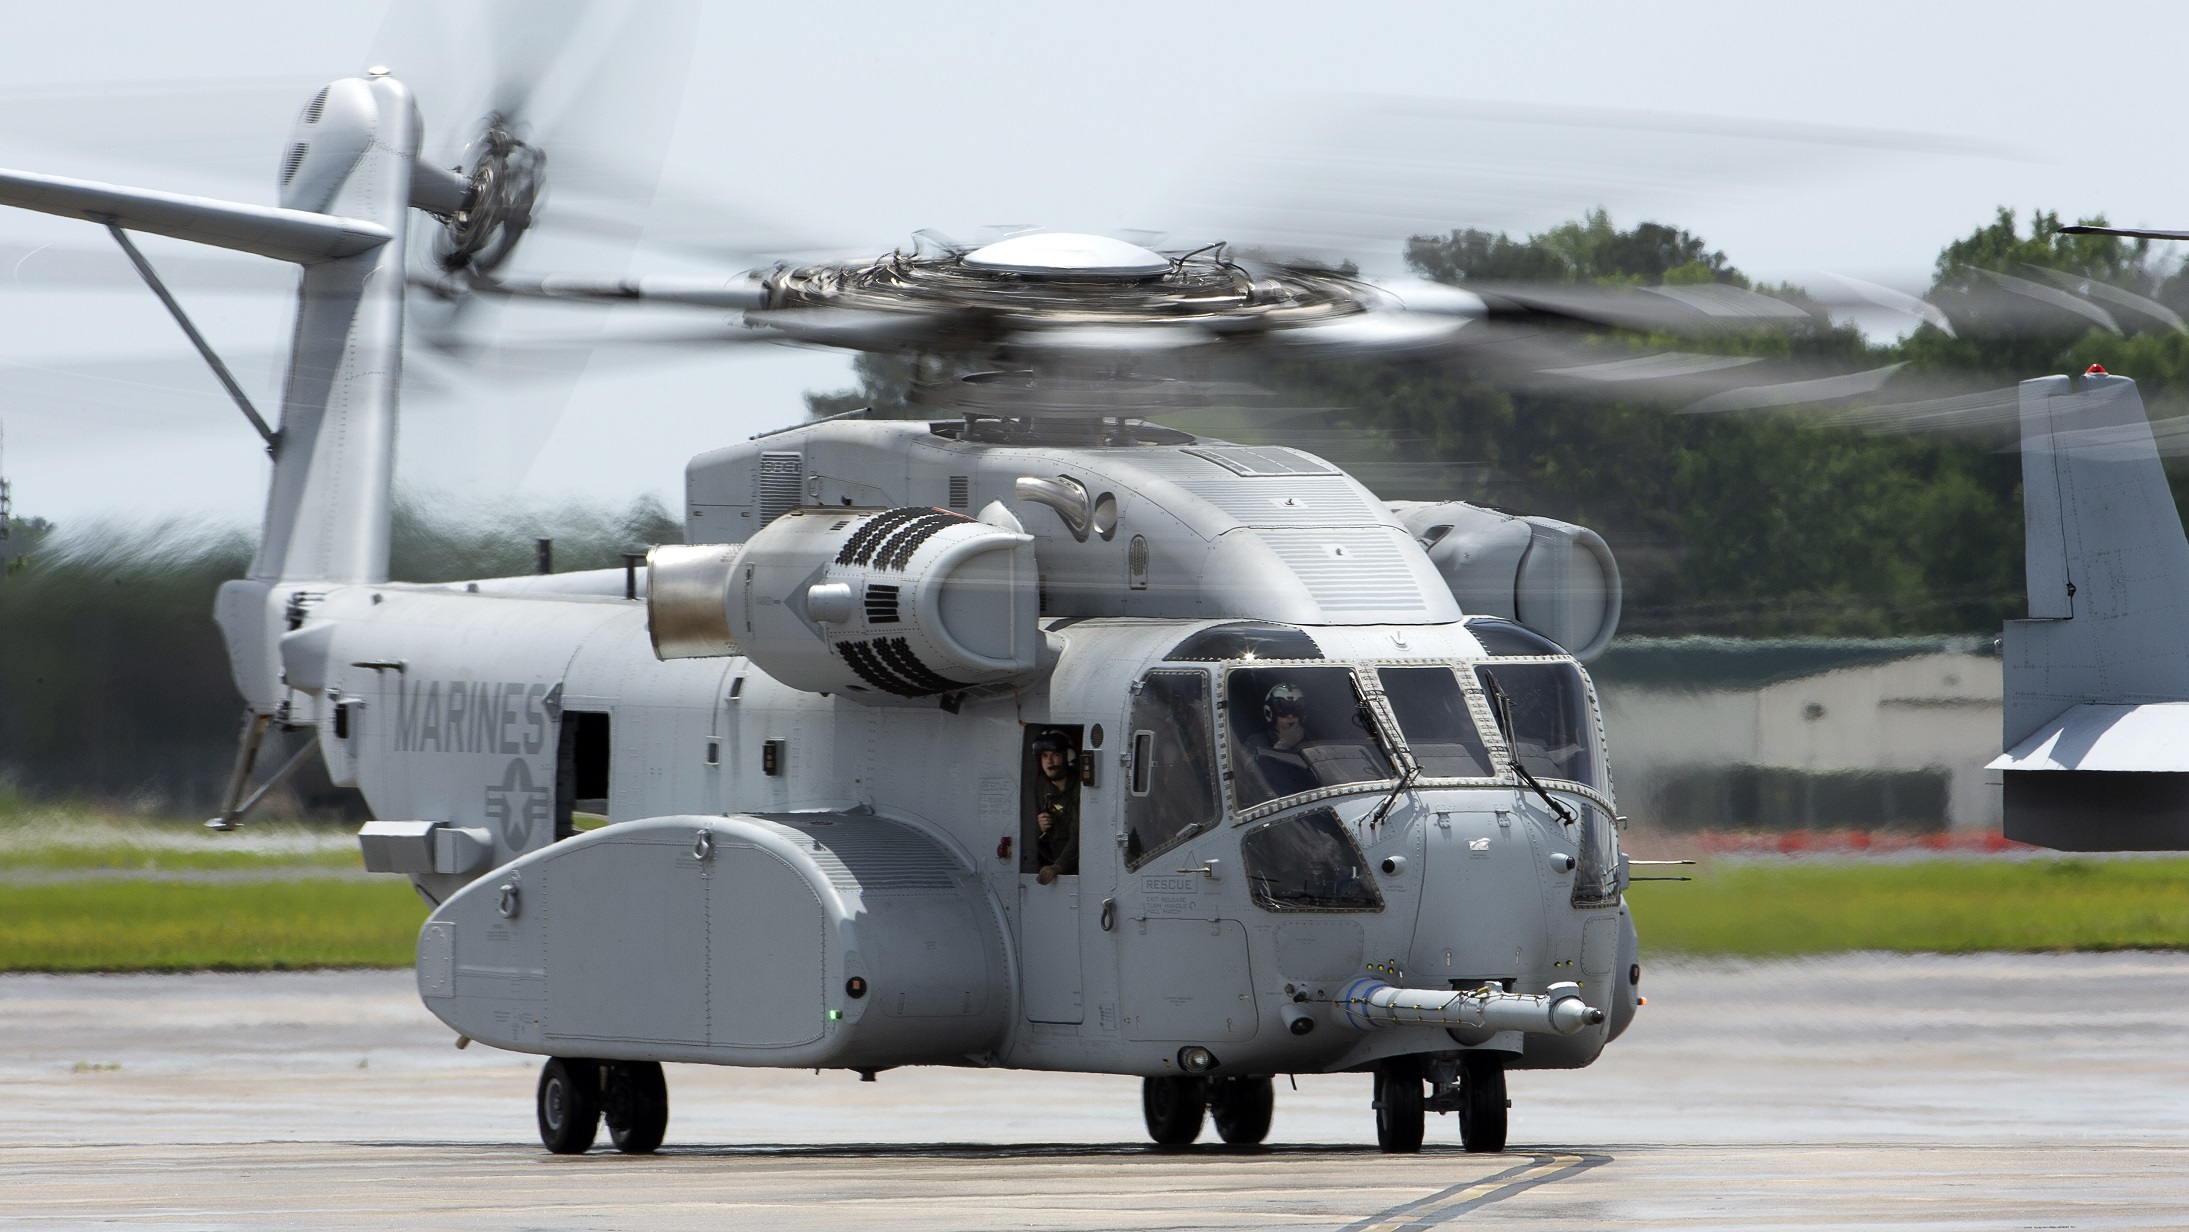 4394438 - Sikorsky, Rheinmetall submit proposal for Germany's new heavy lift helicopter – Defence Blog